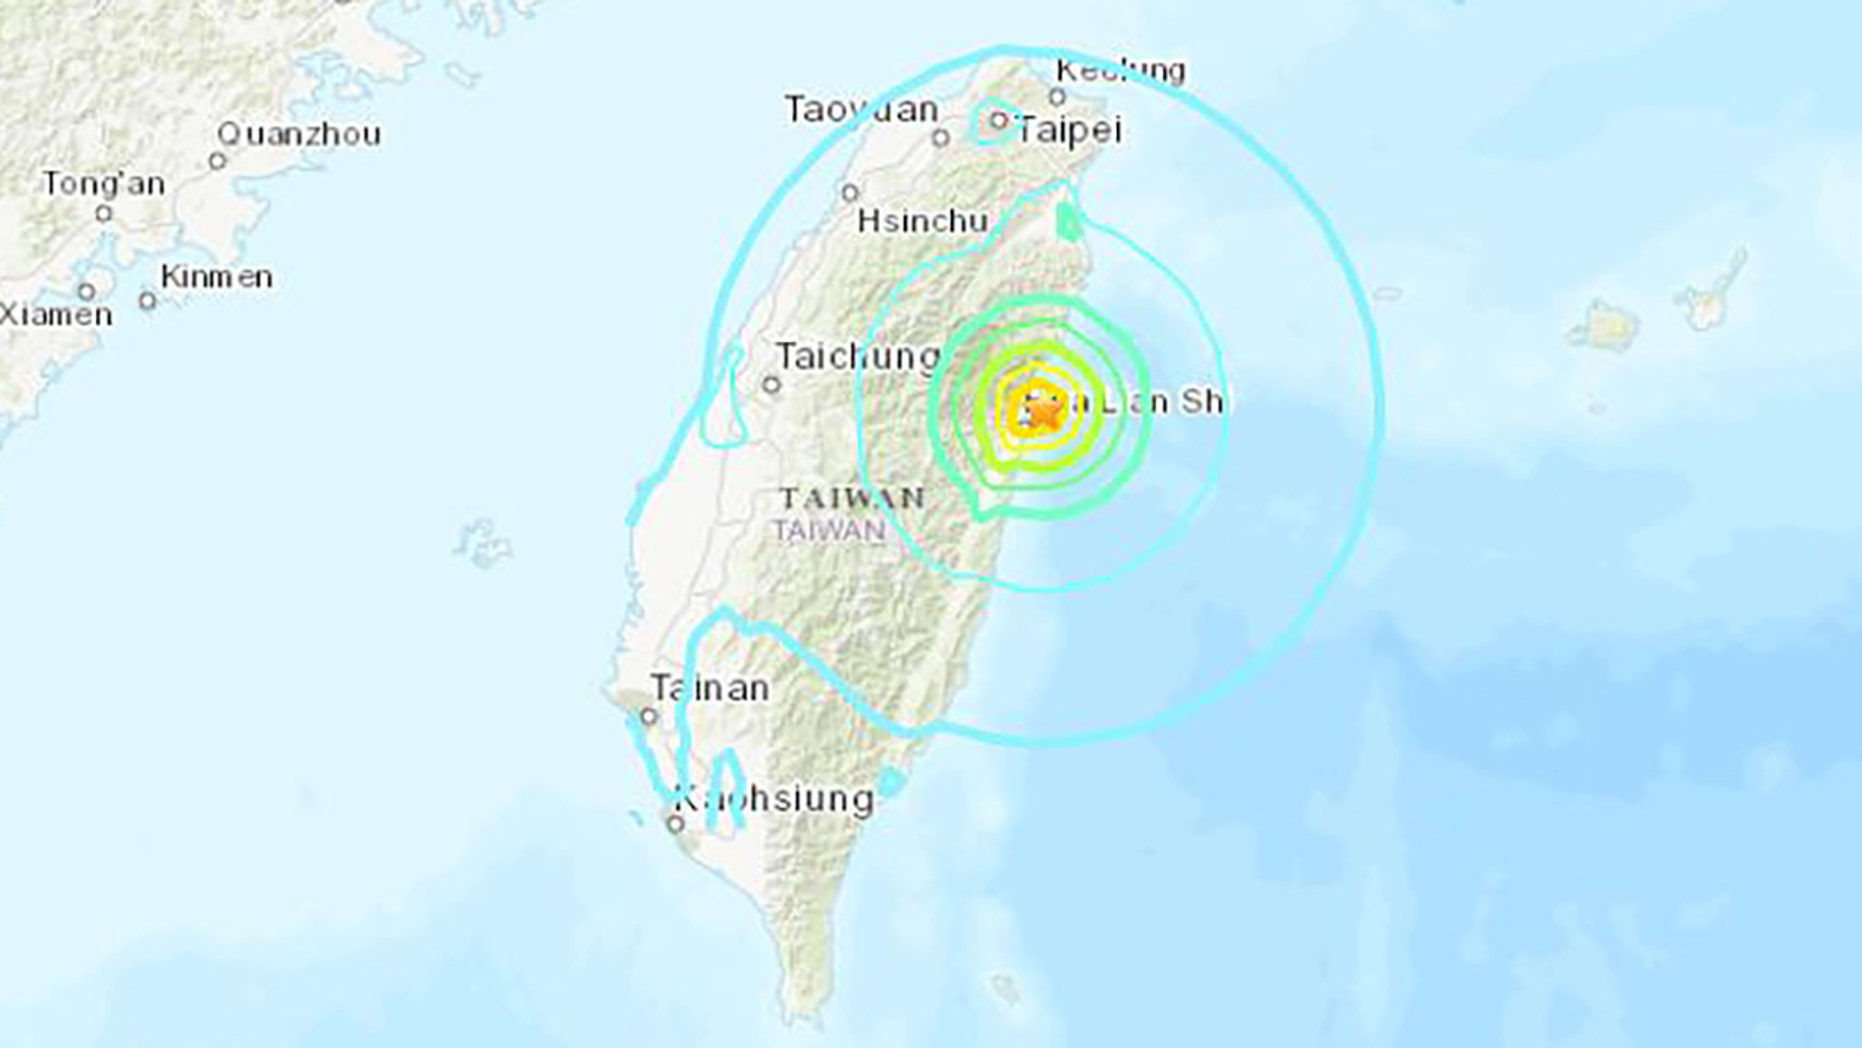 A strong 6.1 magnitude earthquake struck Taiwan's east coast Thursday afternoon, rattling buildings in the capital city.